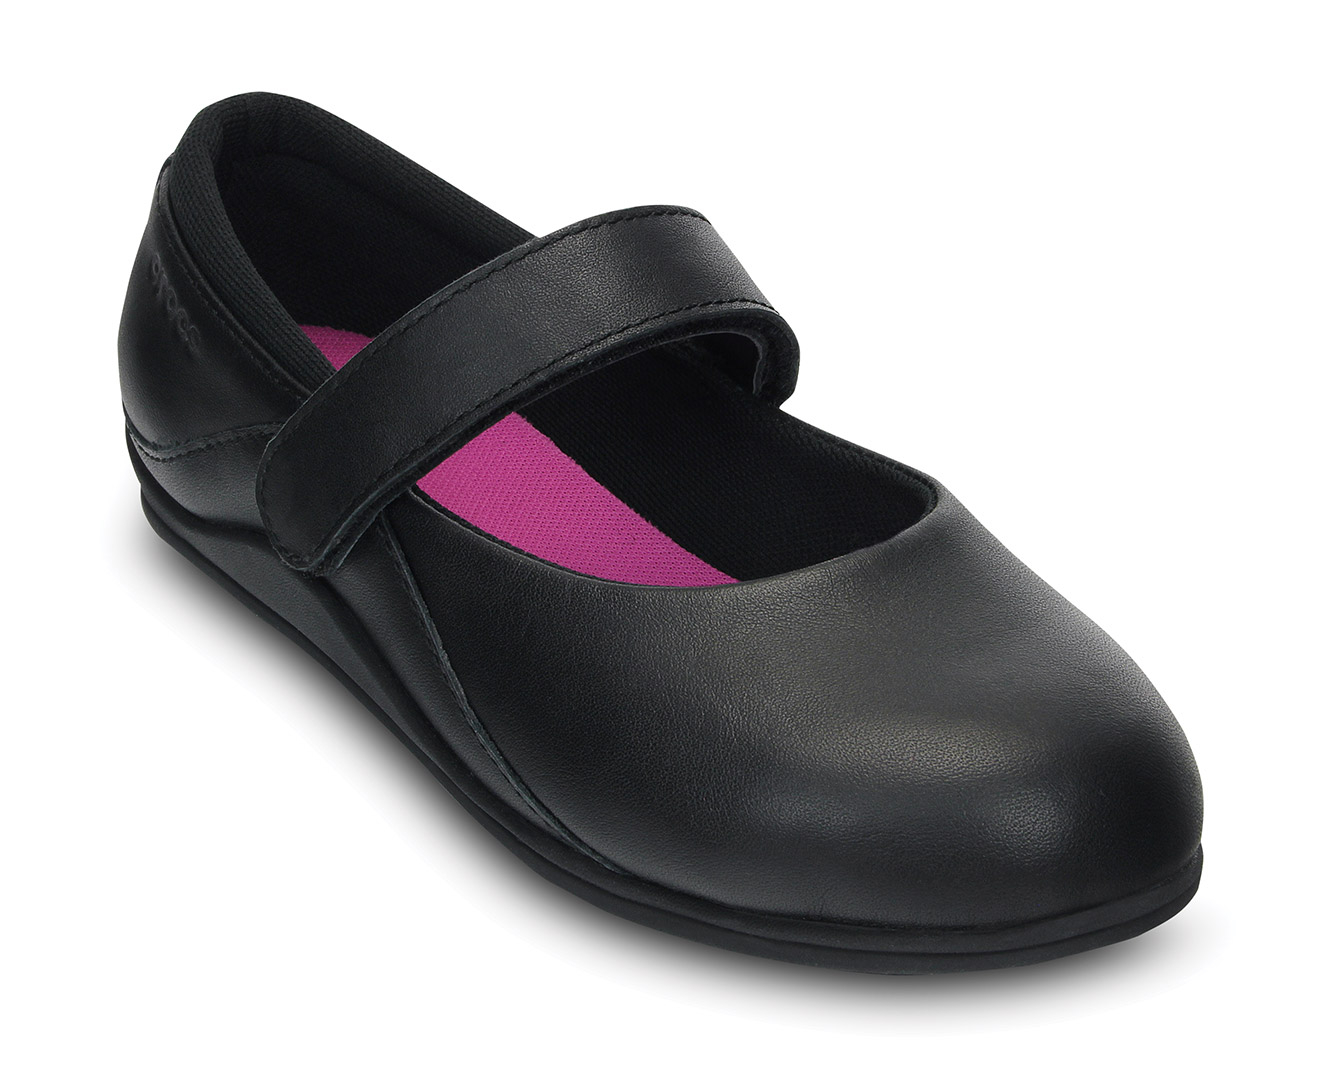 Crocs Women S Fashion Mary Jane Flats